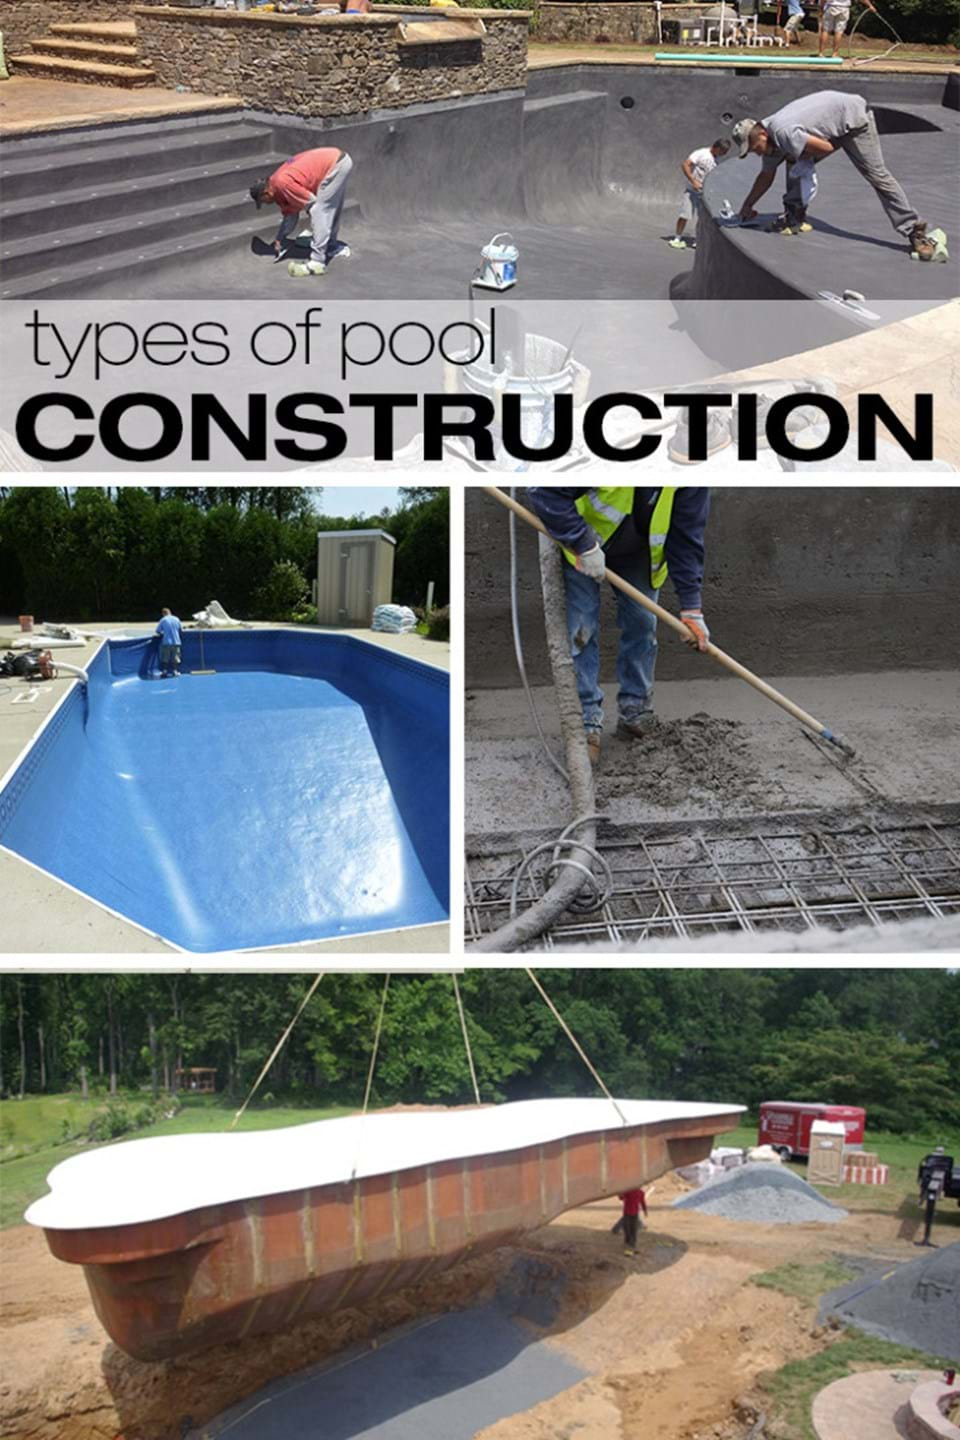 Types of inground swimming pools s r smith blog for Different types of pools